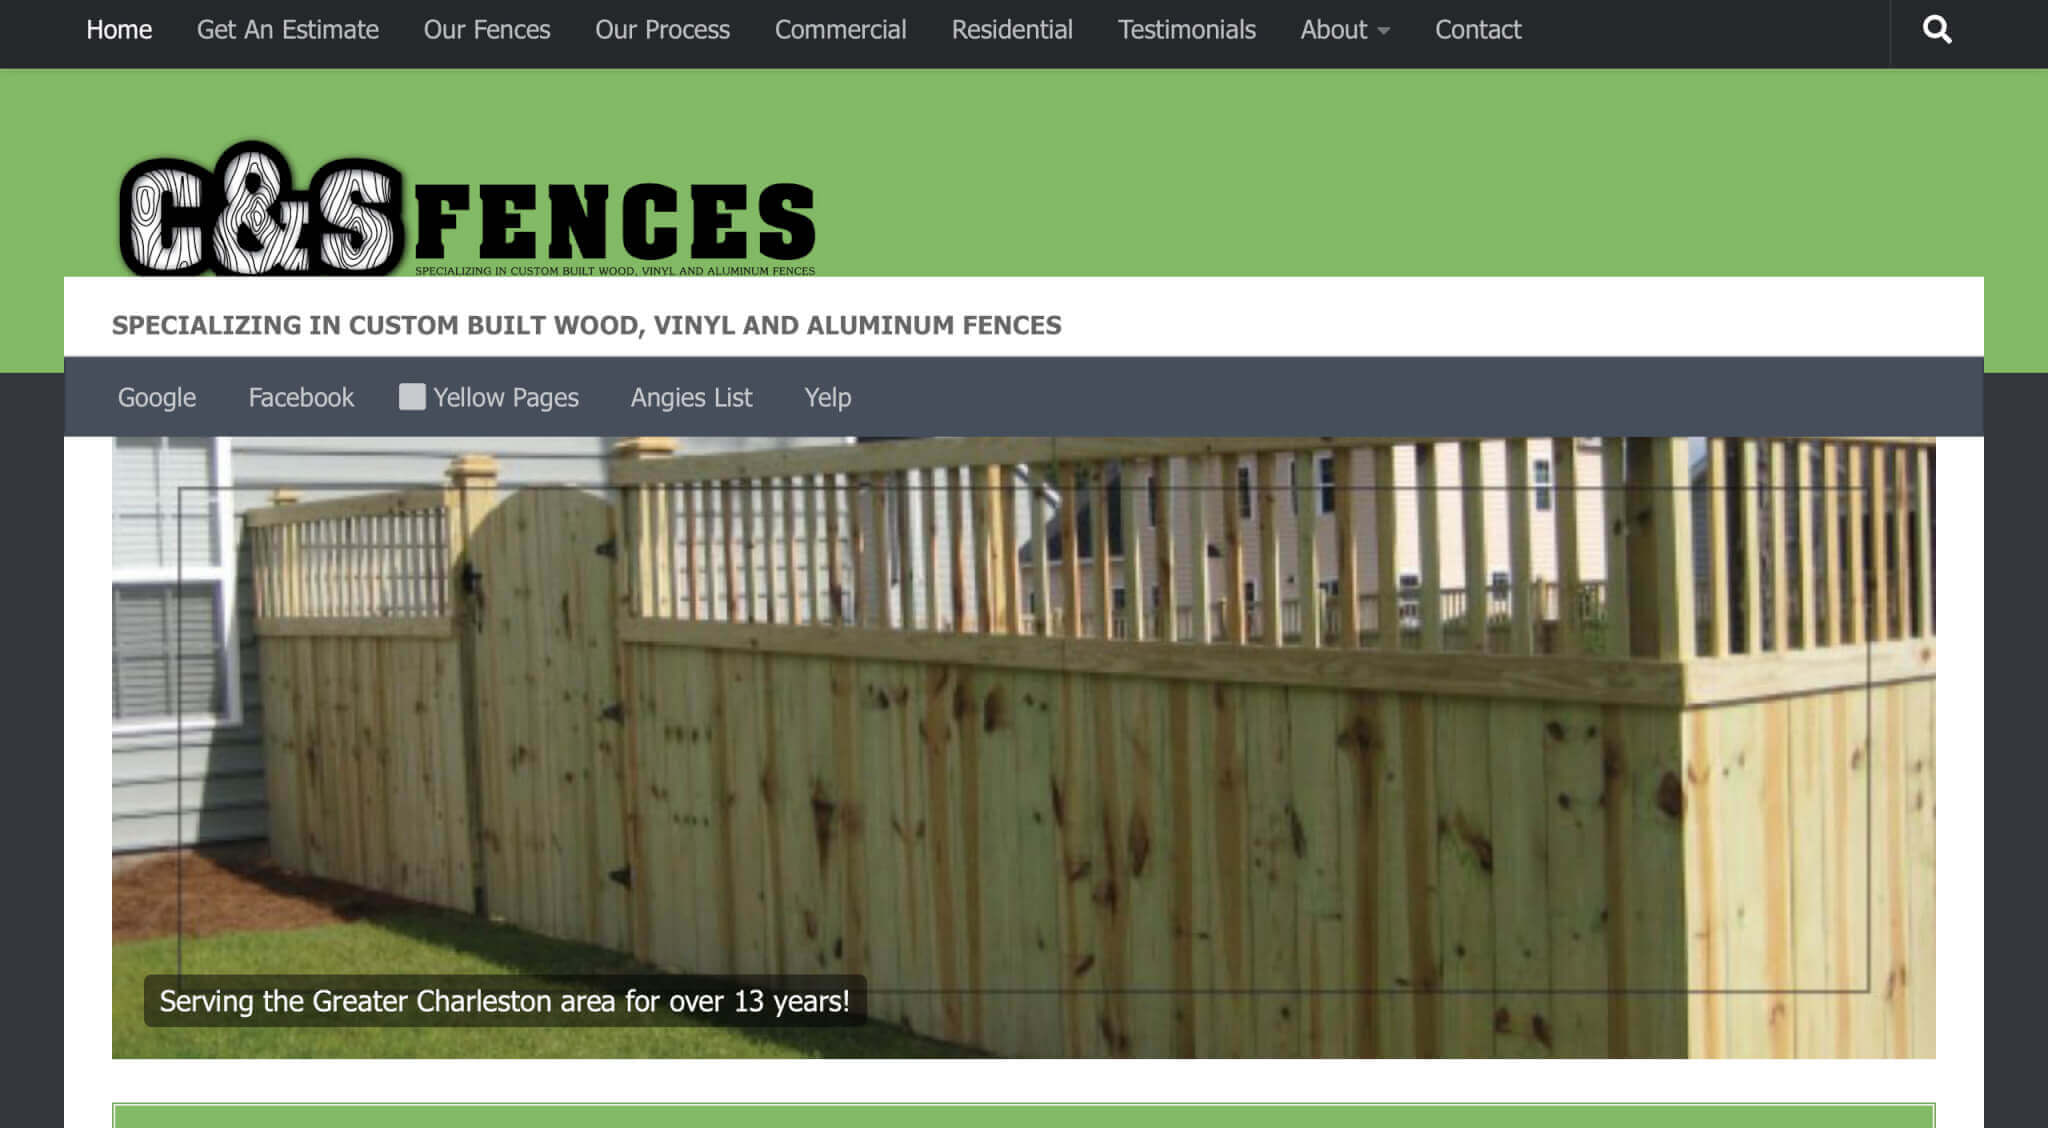 C&S Fences